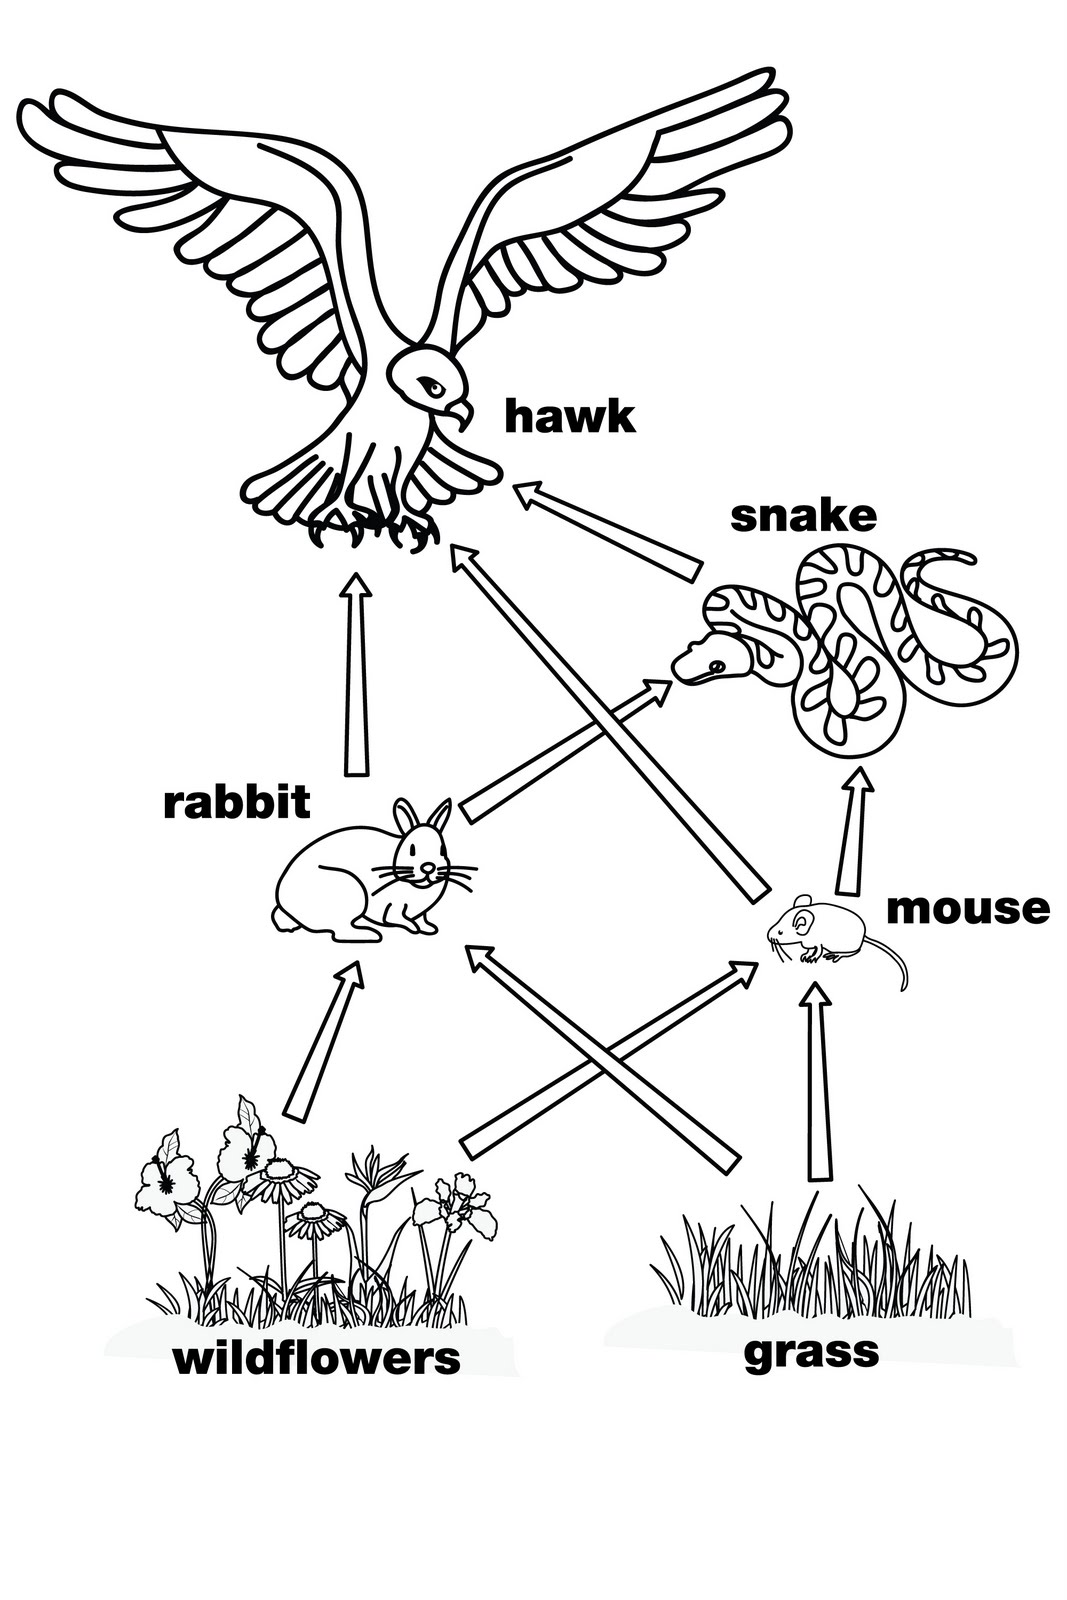 food web coloring pages other graphical works